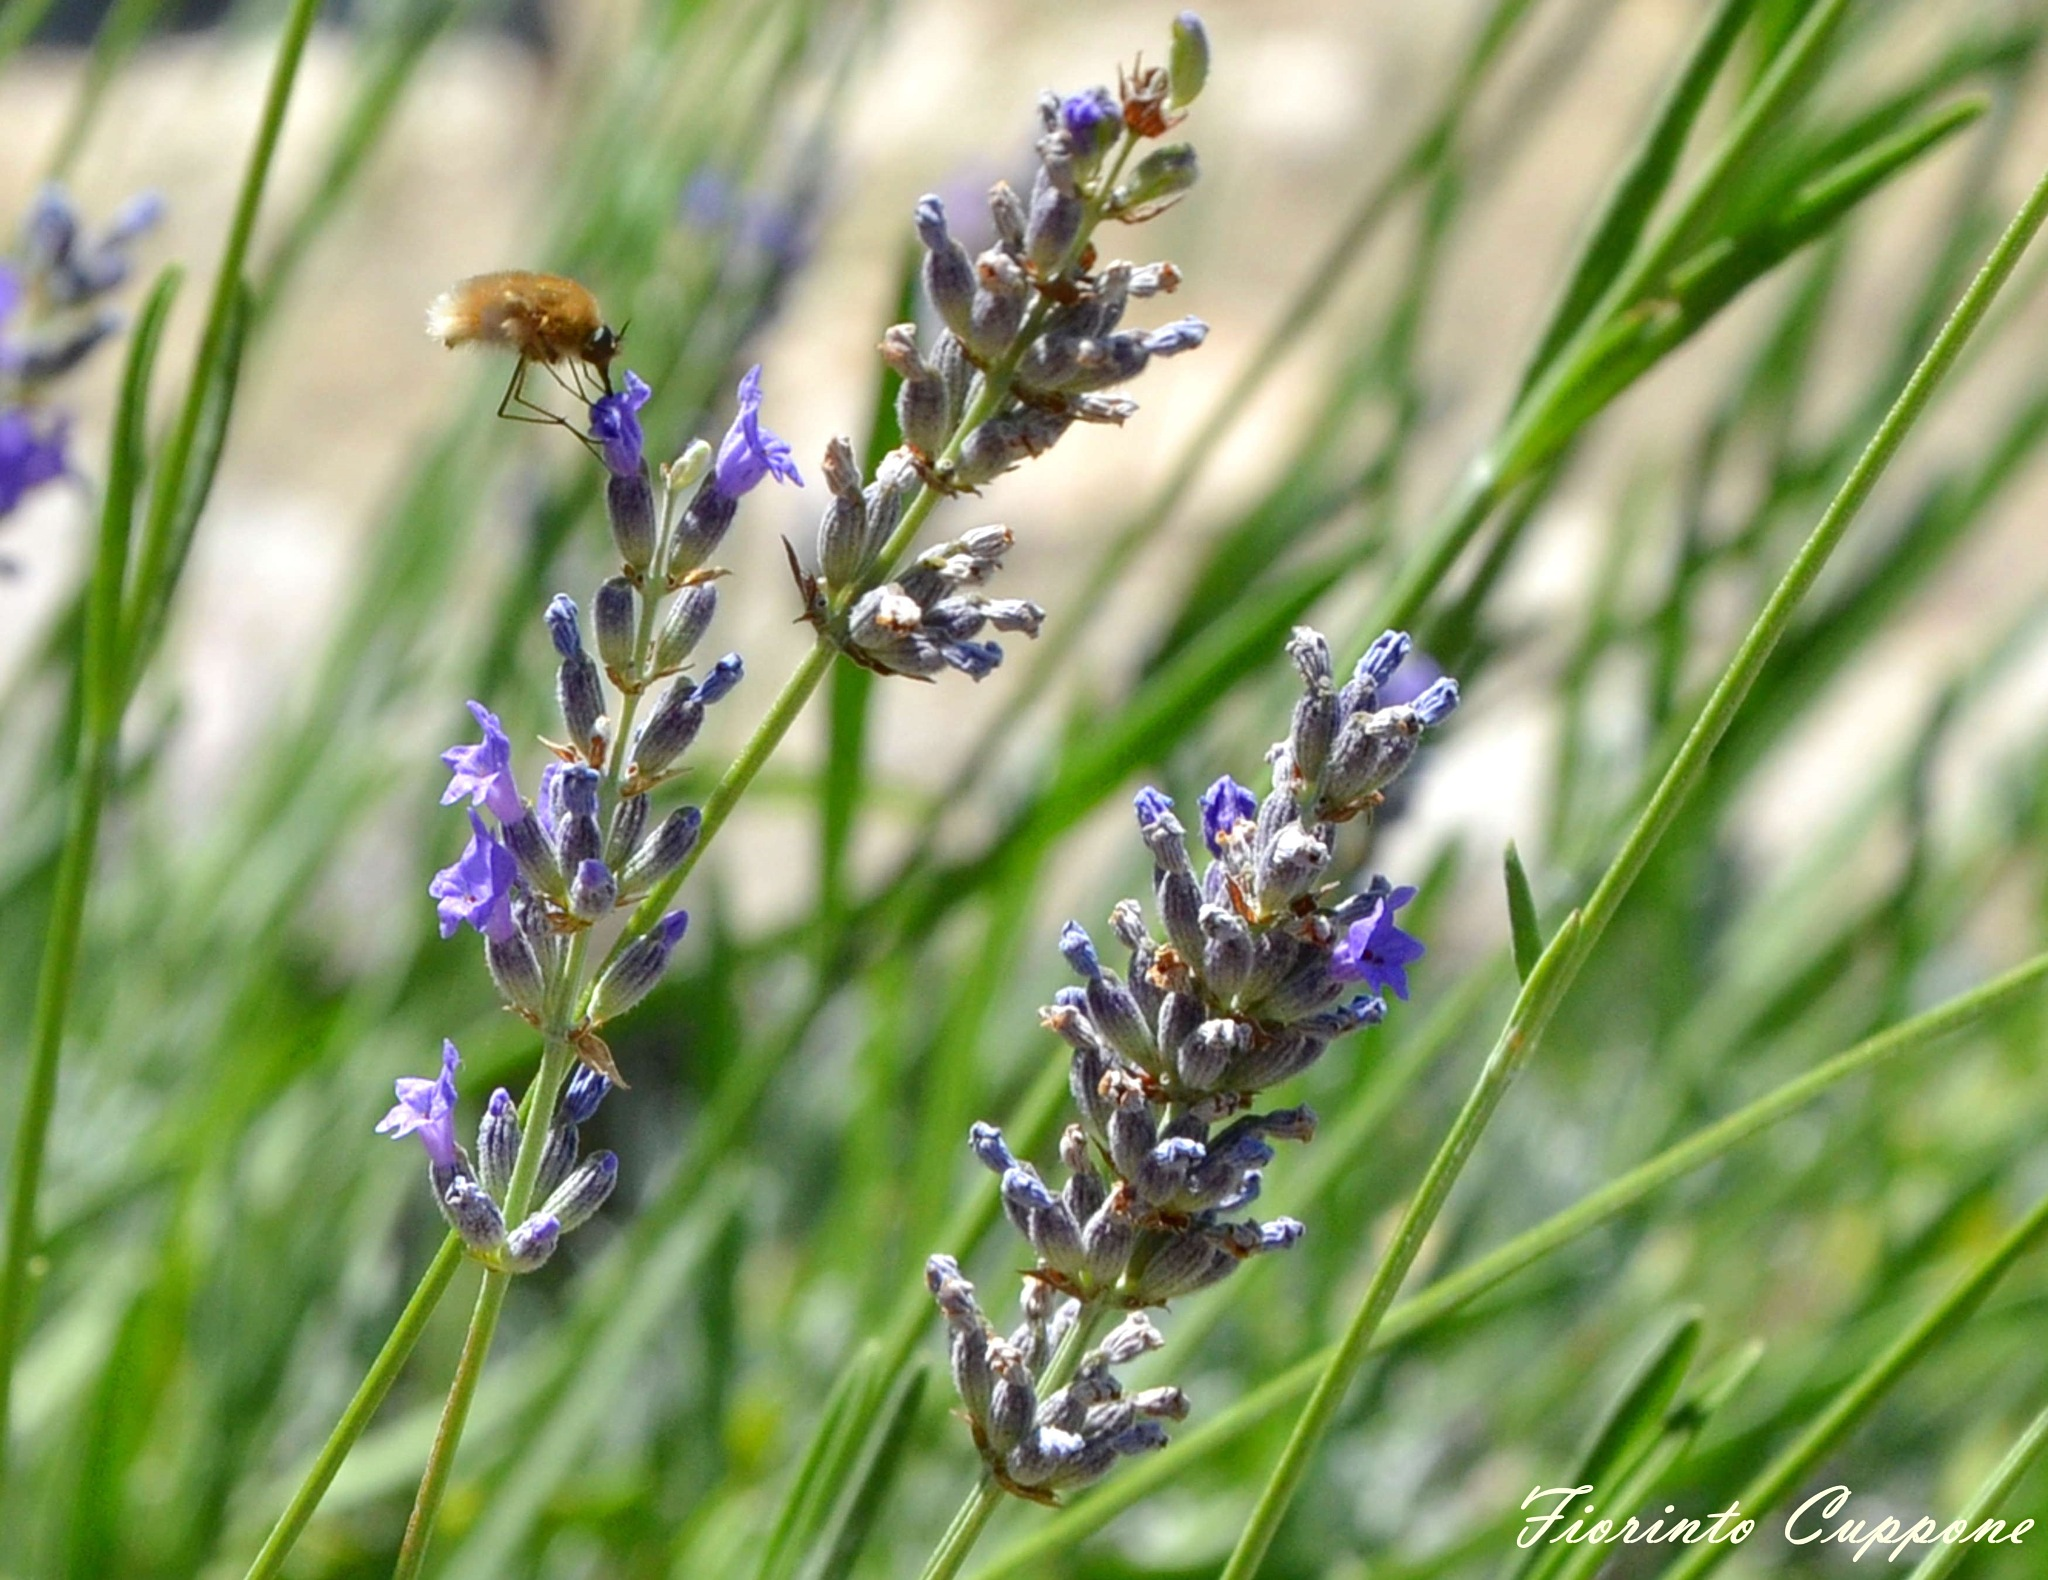 A weird pollinator on lavender by Fiorinto Cuppone